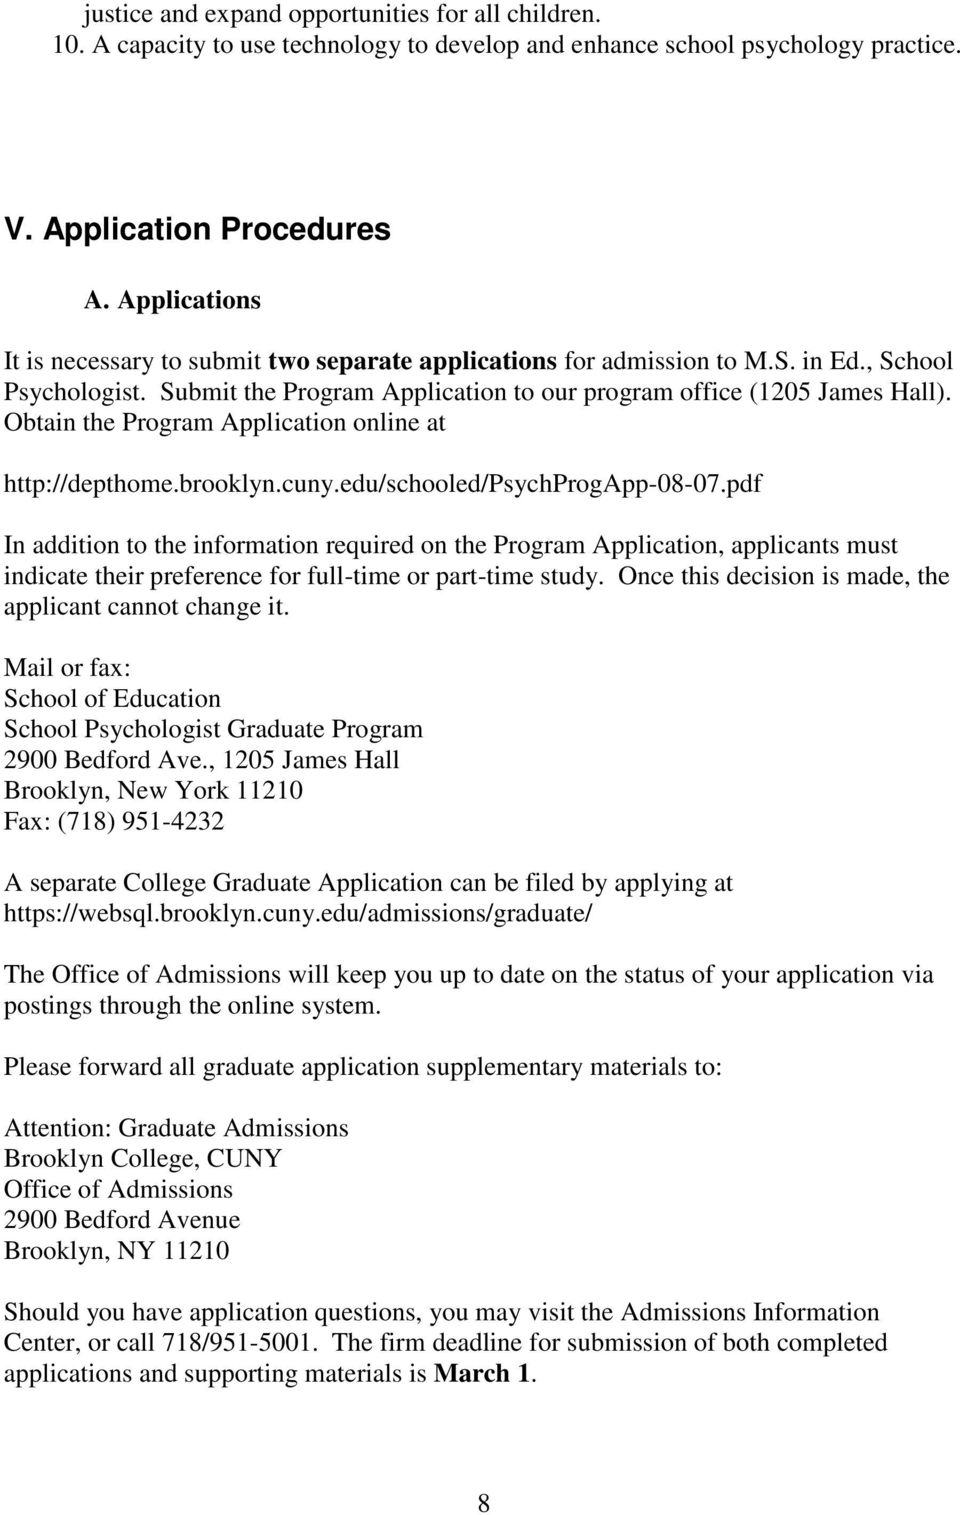 Obtain the Program Application online at http://depthome.brooklyn.cuny.edu/schooled/psychprogapp-08-07.